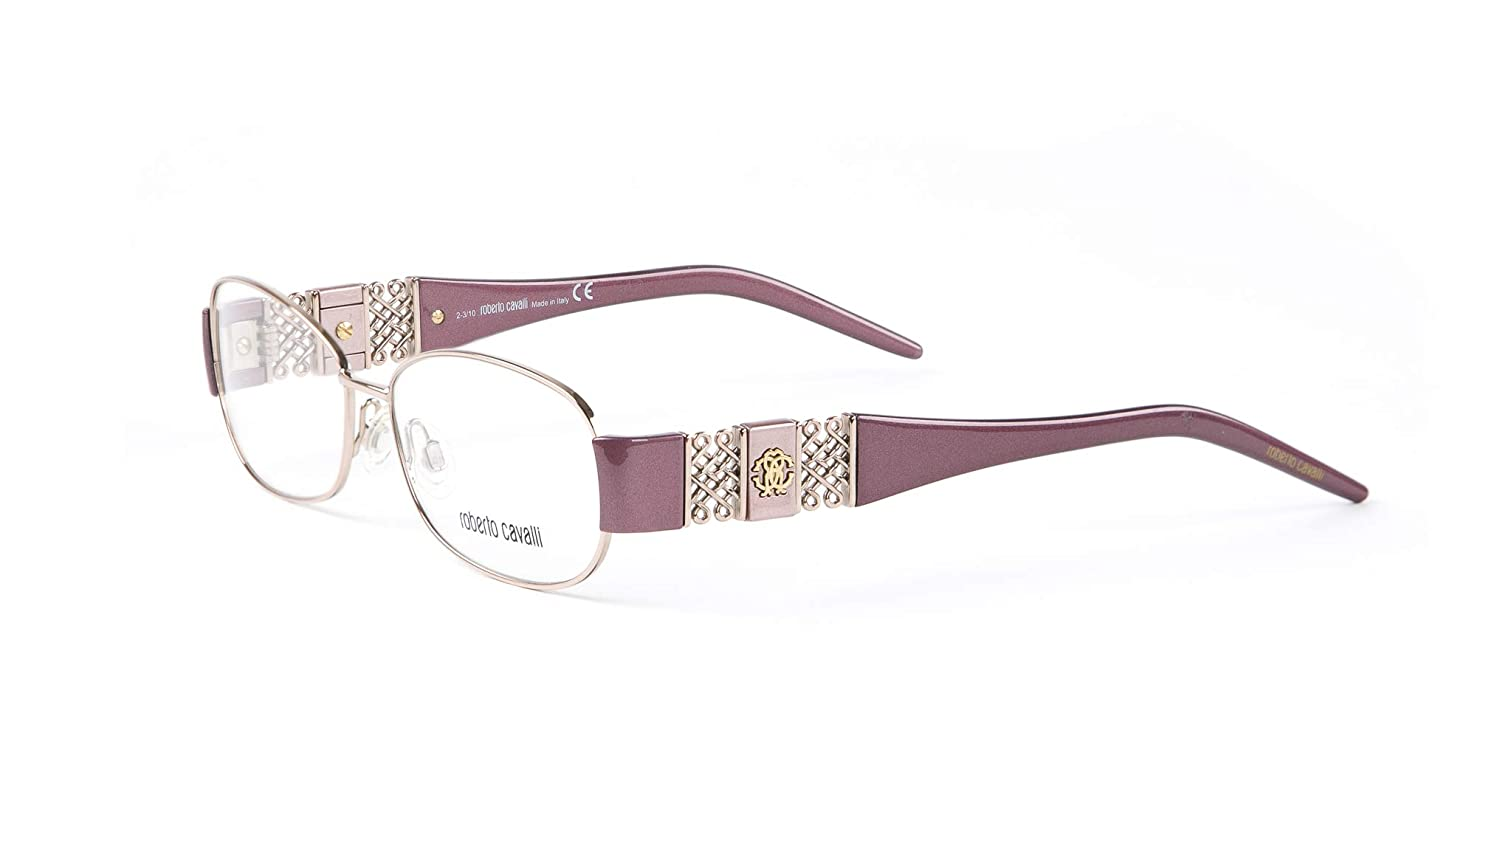 641992b478 Amazon.com  Roberto Cavalli Camelia Eyeglass Frames 54mm Metallic Burgundy   Clothing